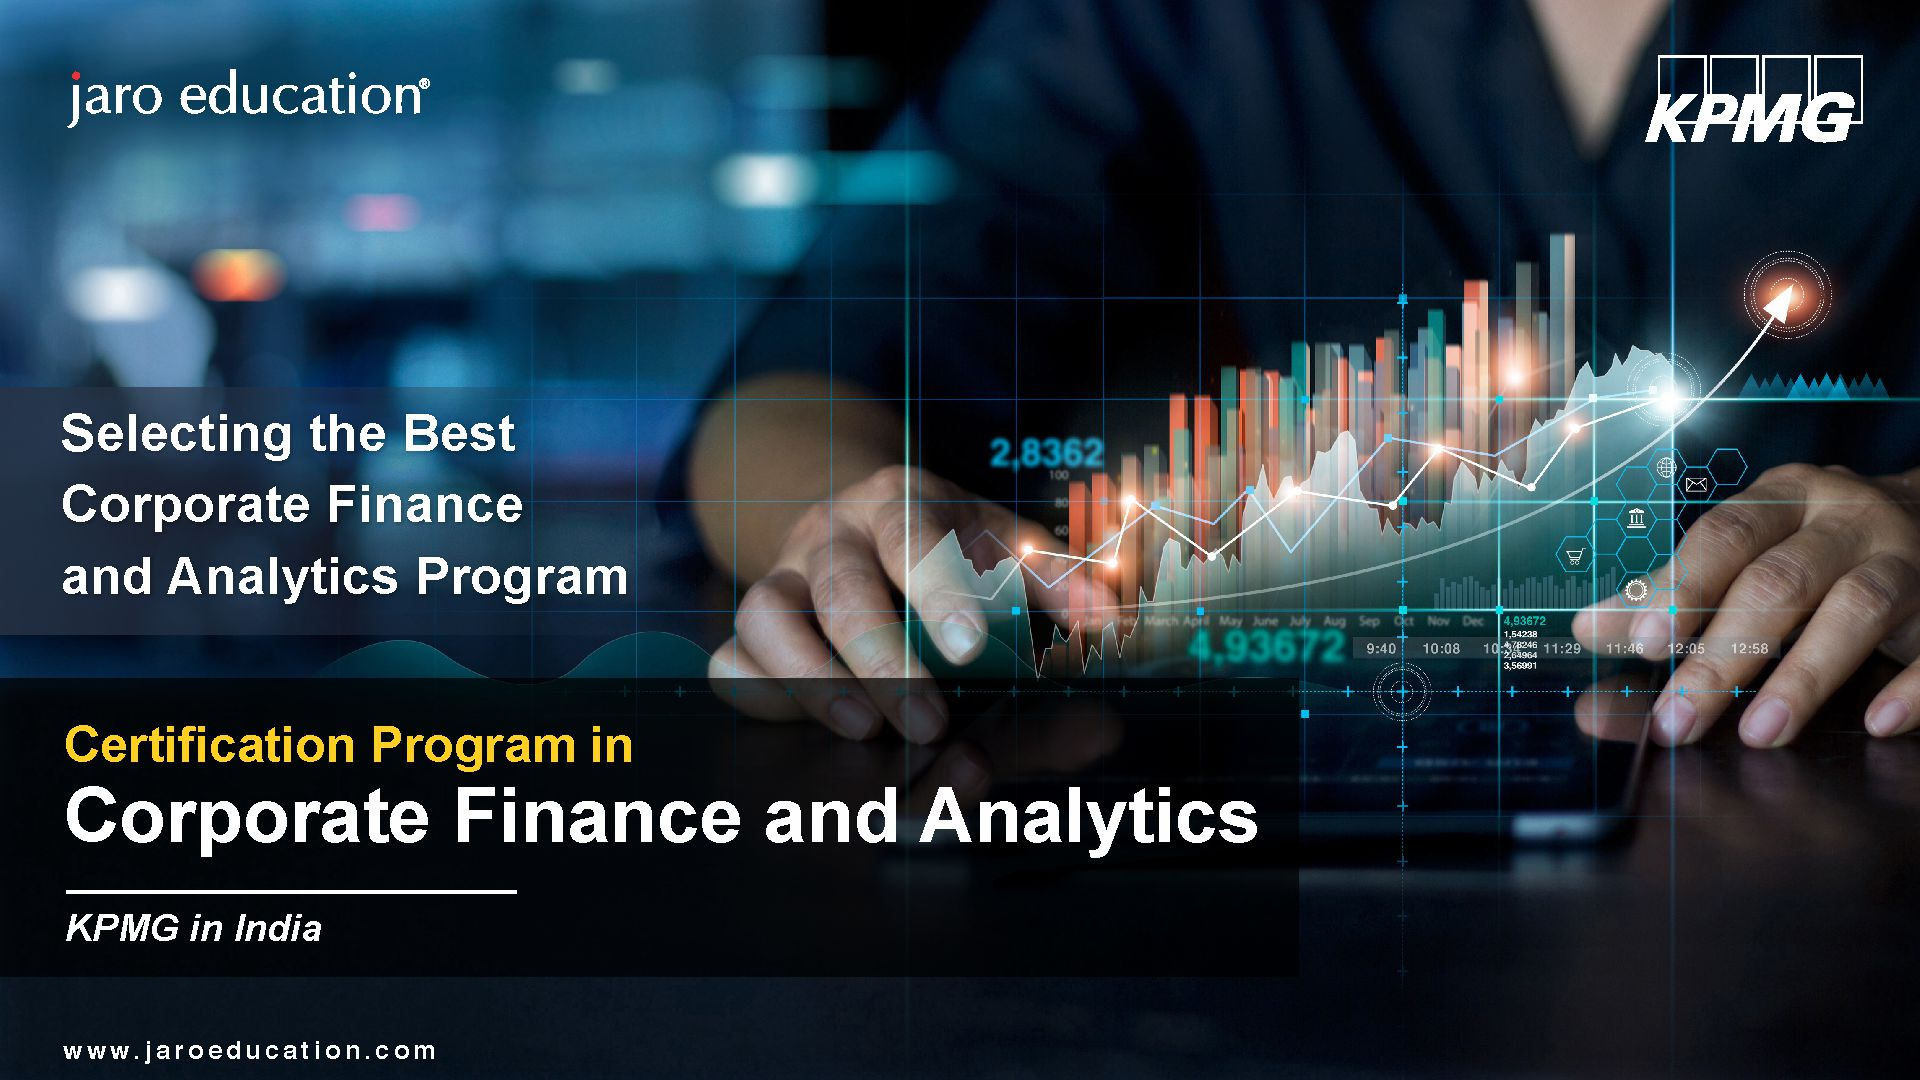 Perks of choosing a corporate finance and analytics course